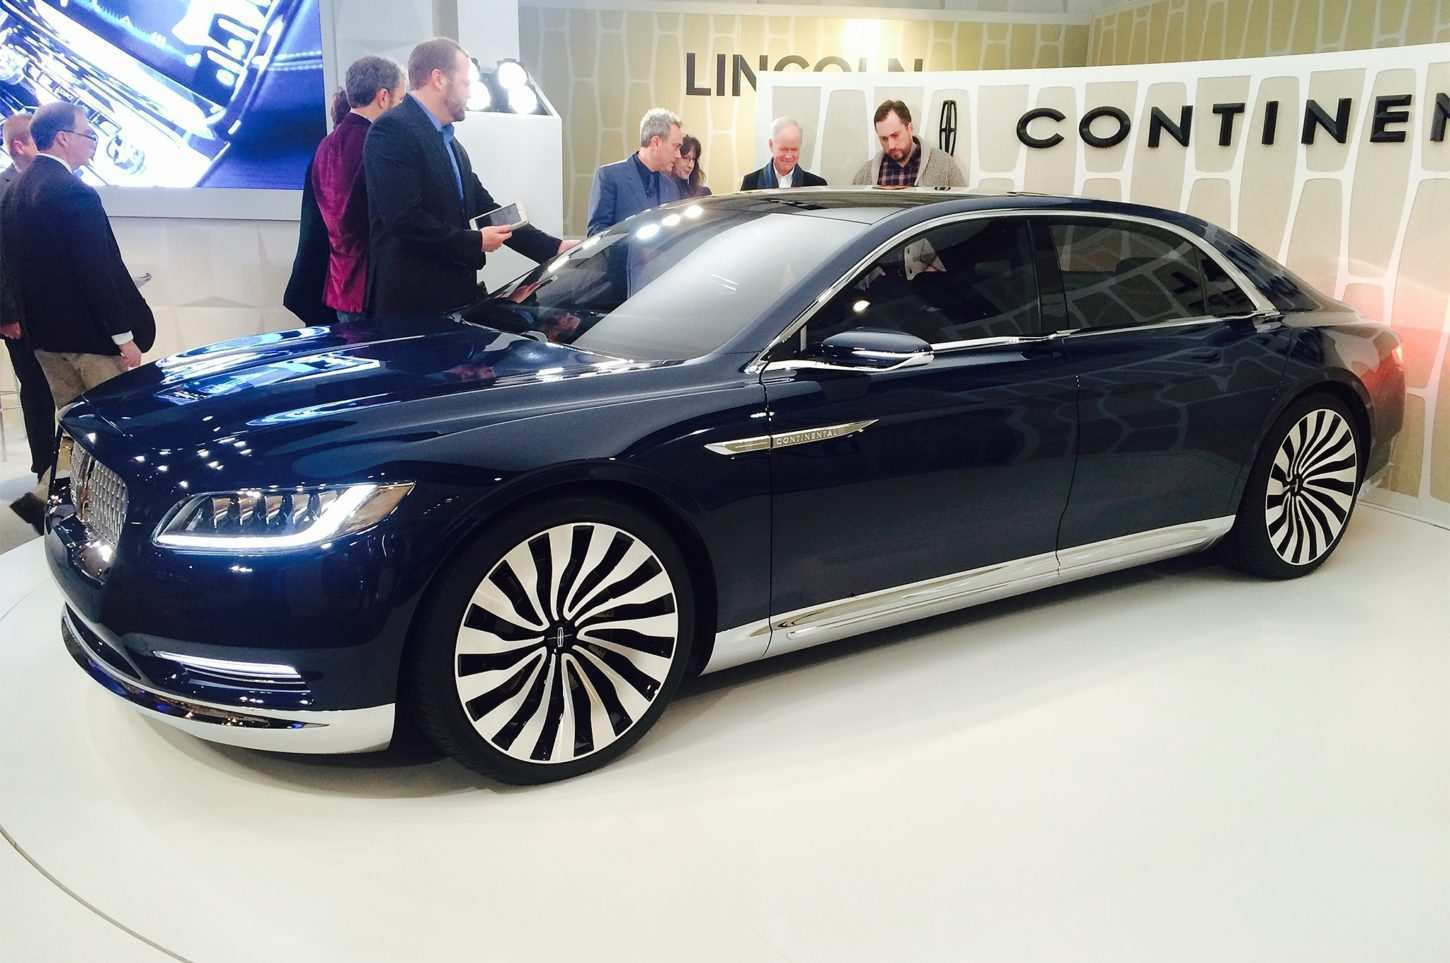 59 New 2020 Lincoln Continental History